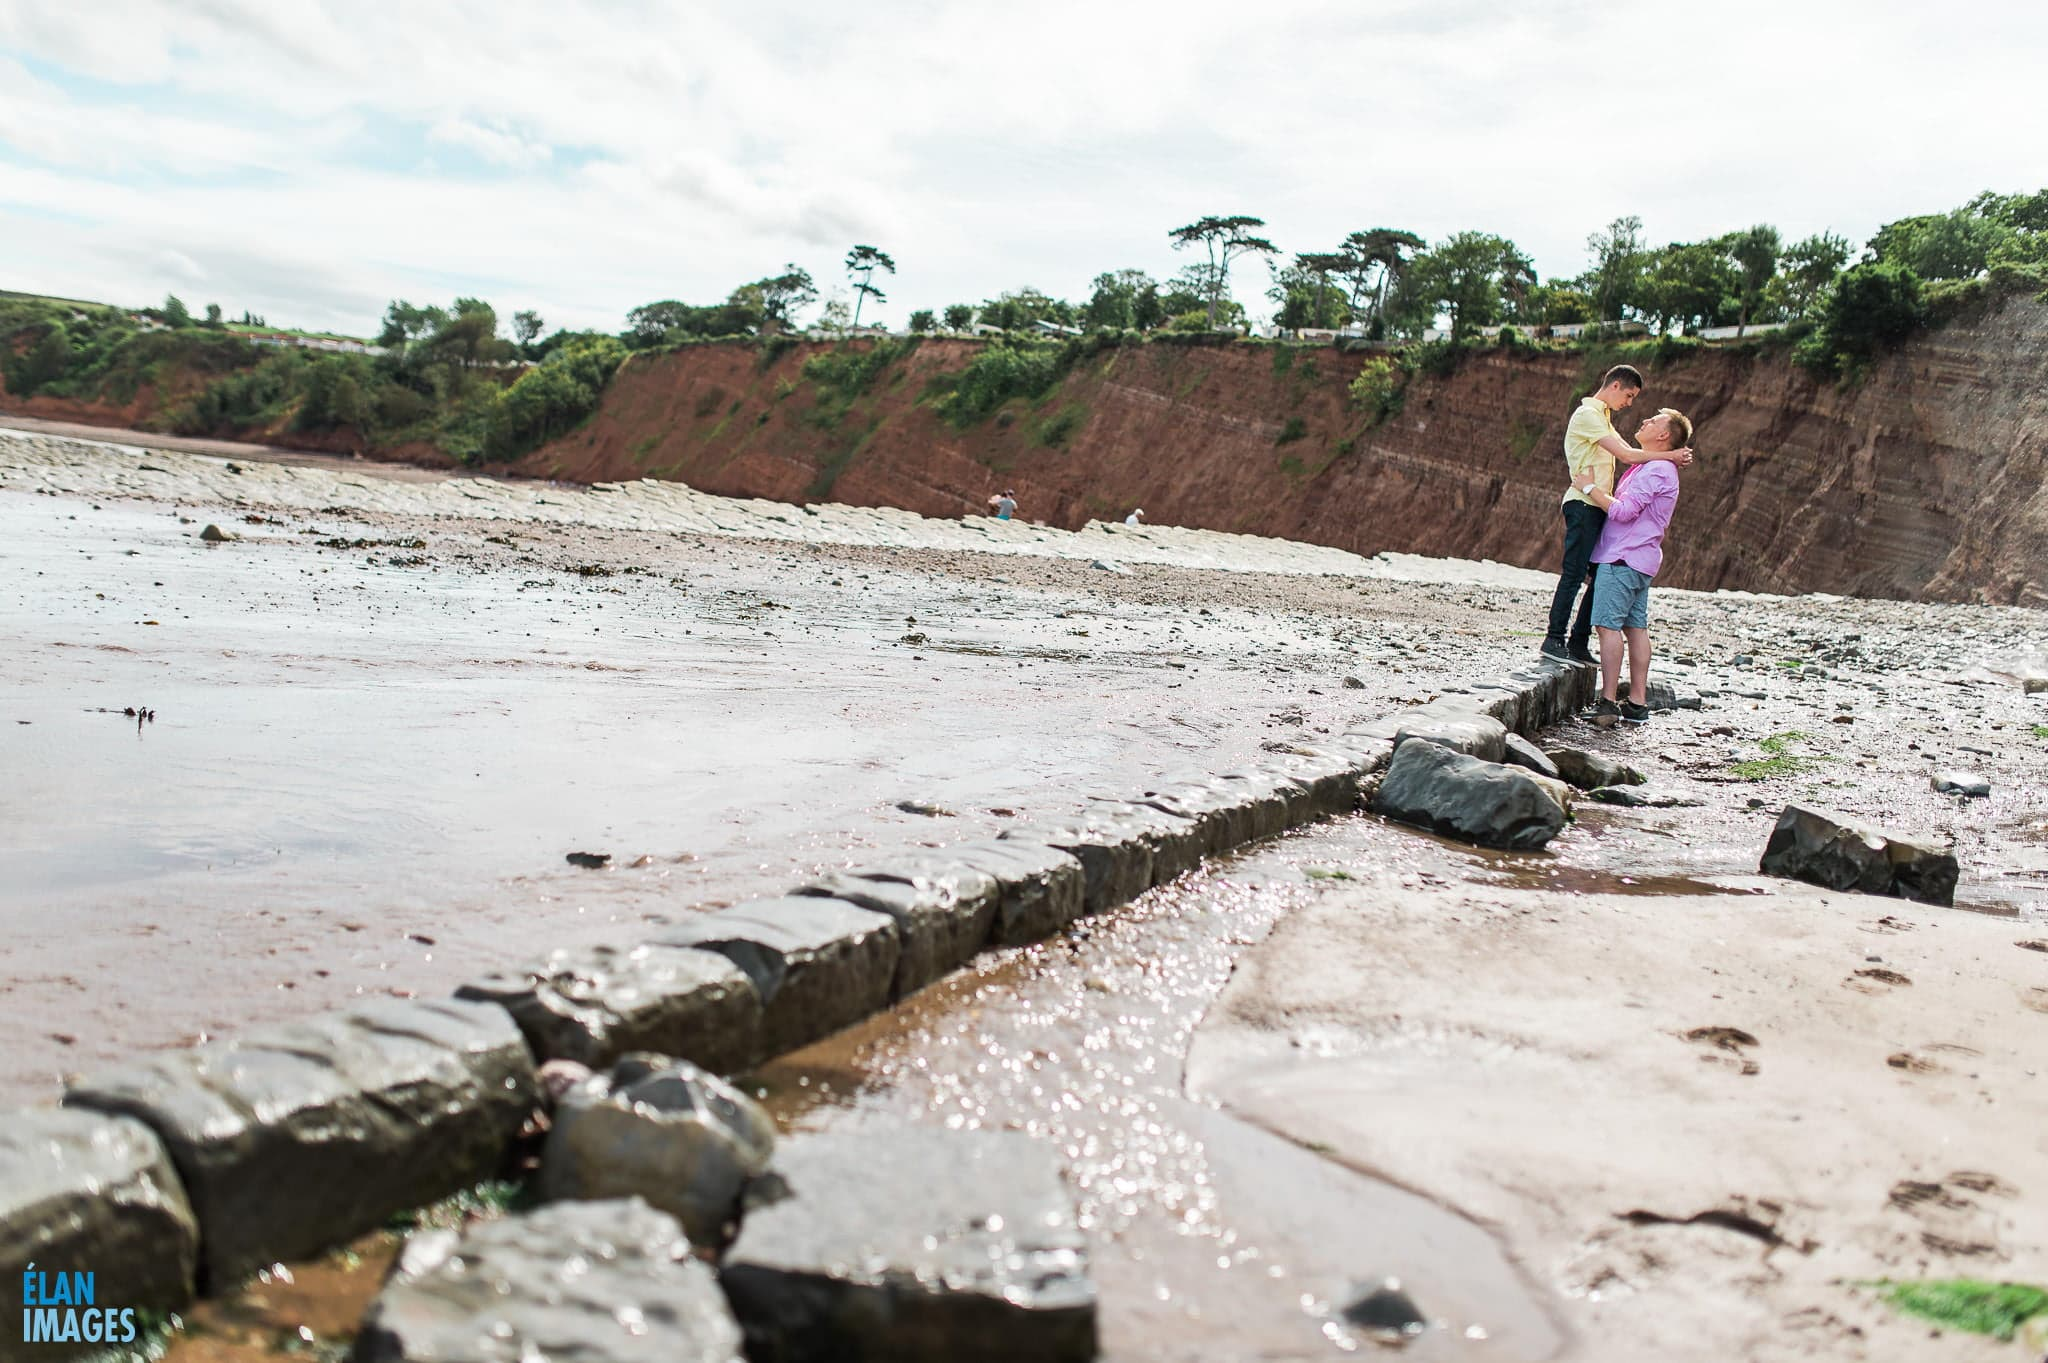 Engagement photo shoot at St Audrie's Bay, Devon 20